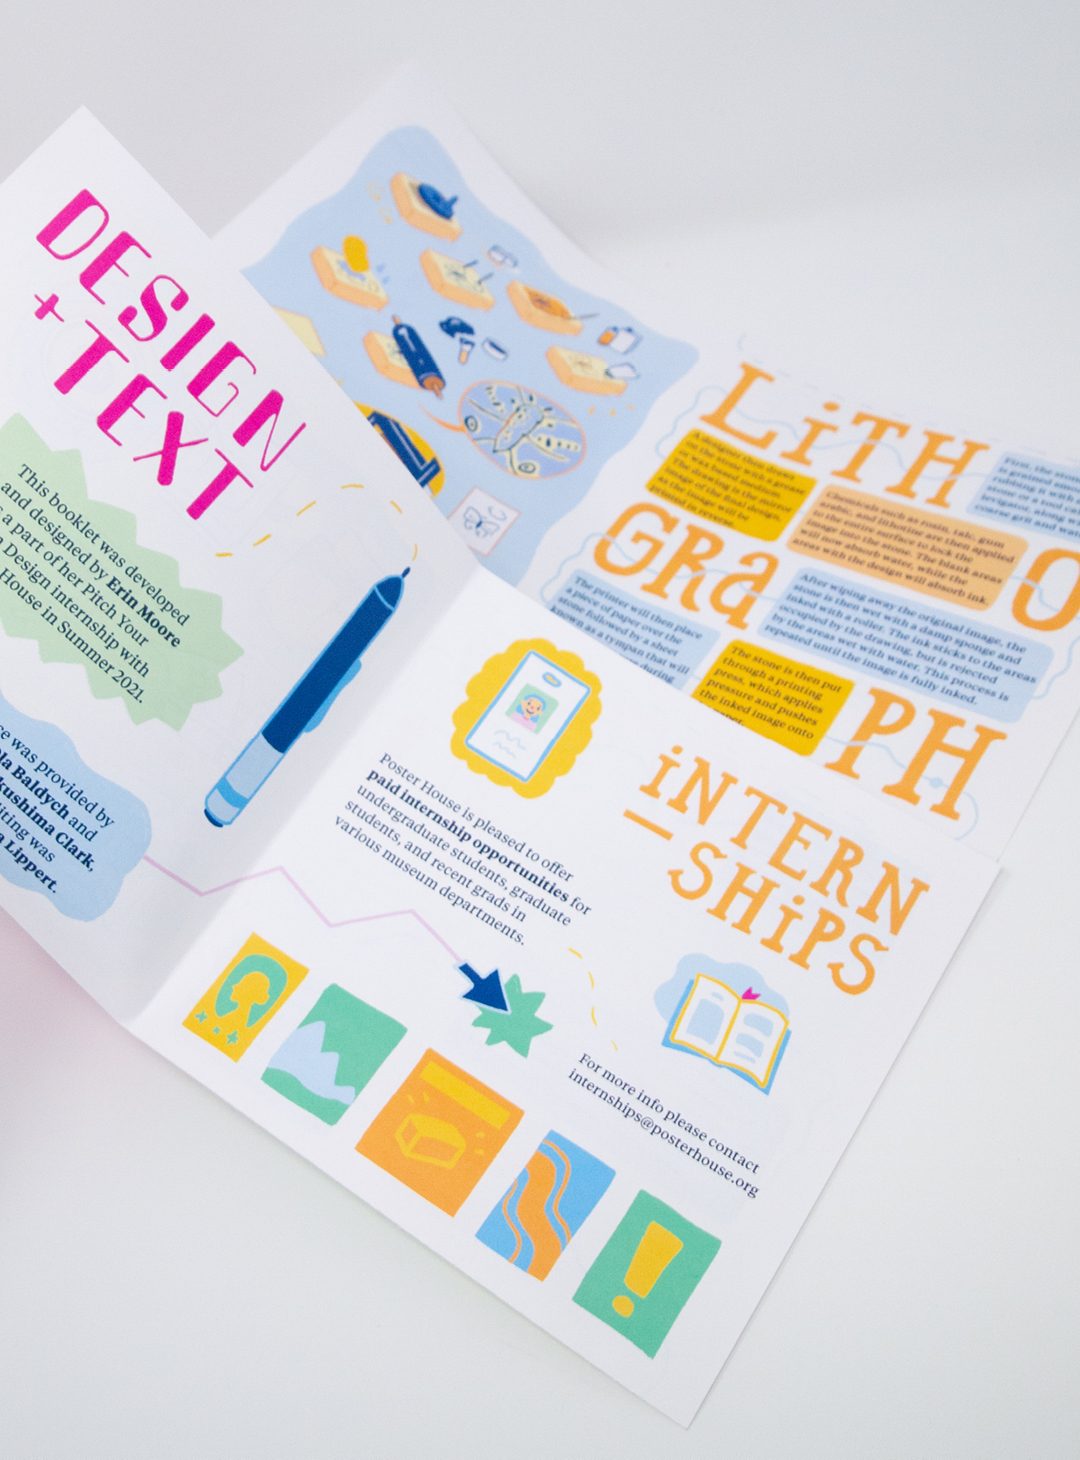 Photo of the 1st step of the poster being unfolded, a spread with the titles